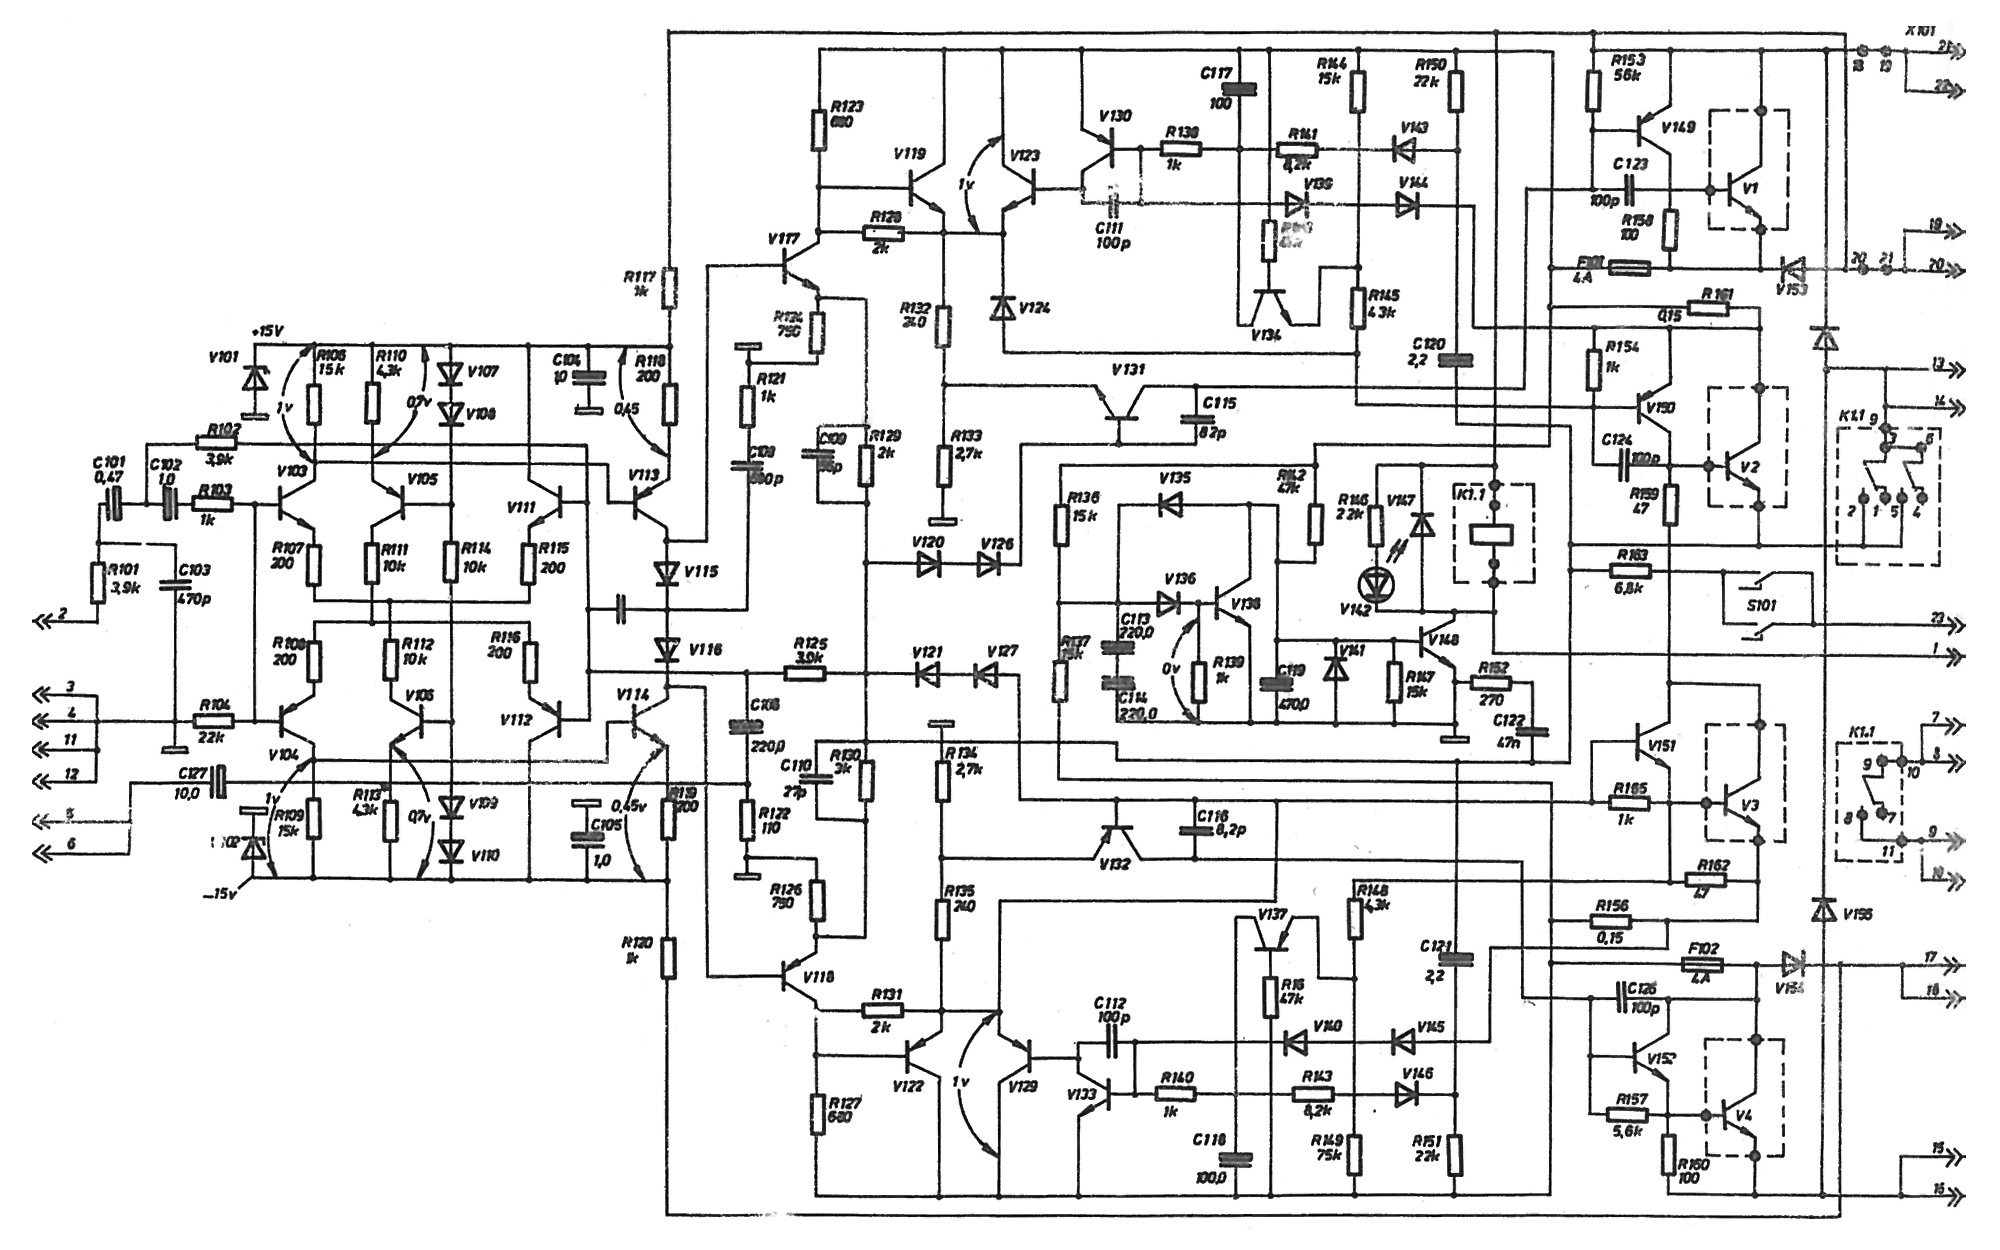 reducing distortion in this class b circuit